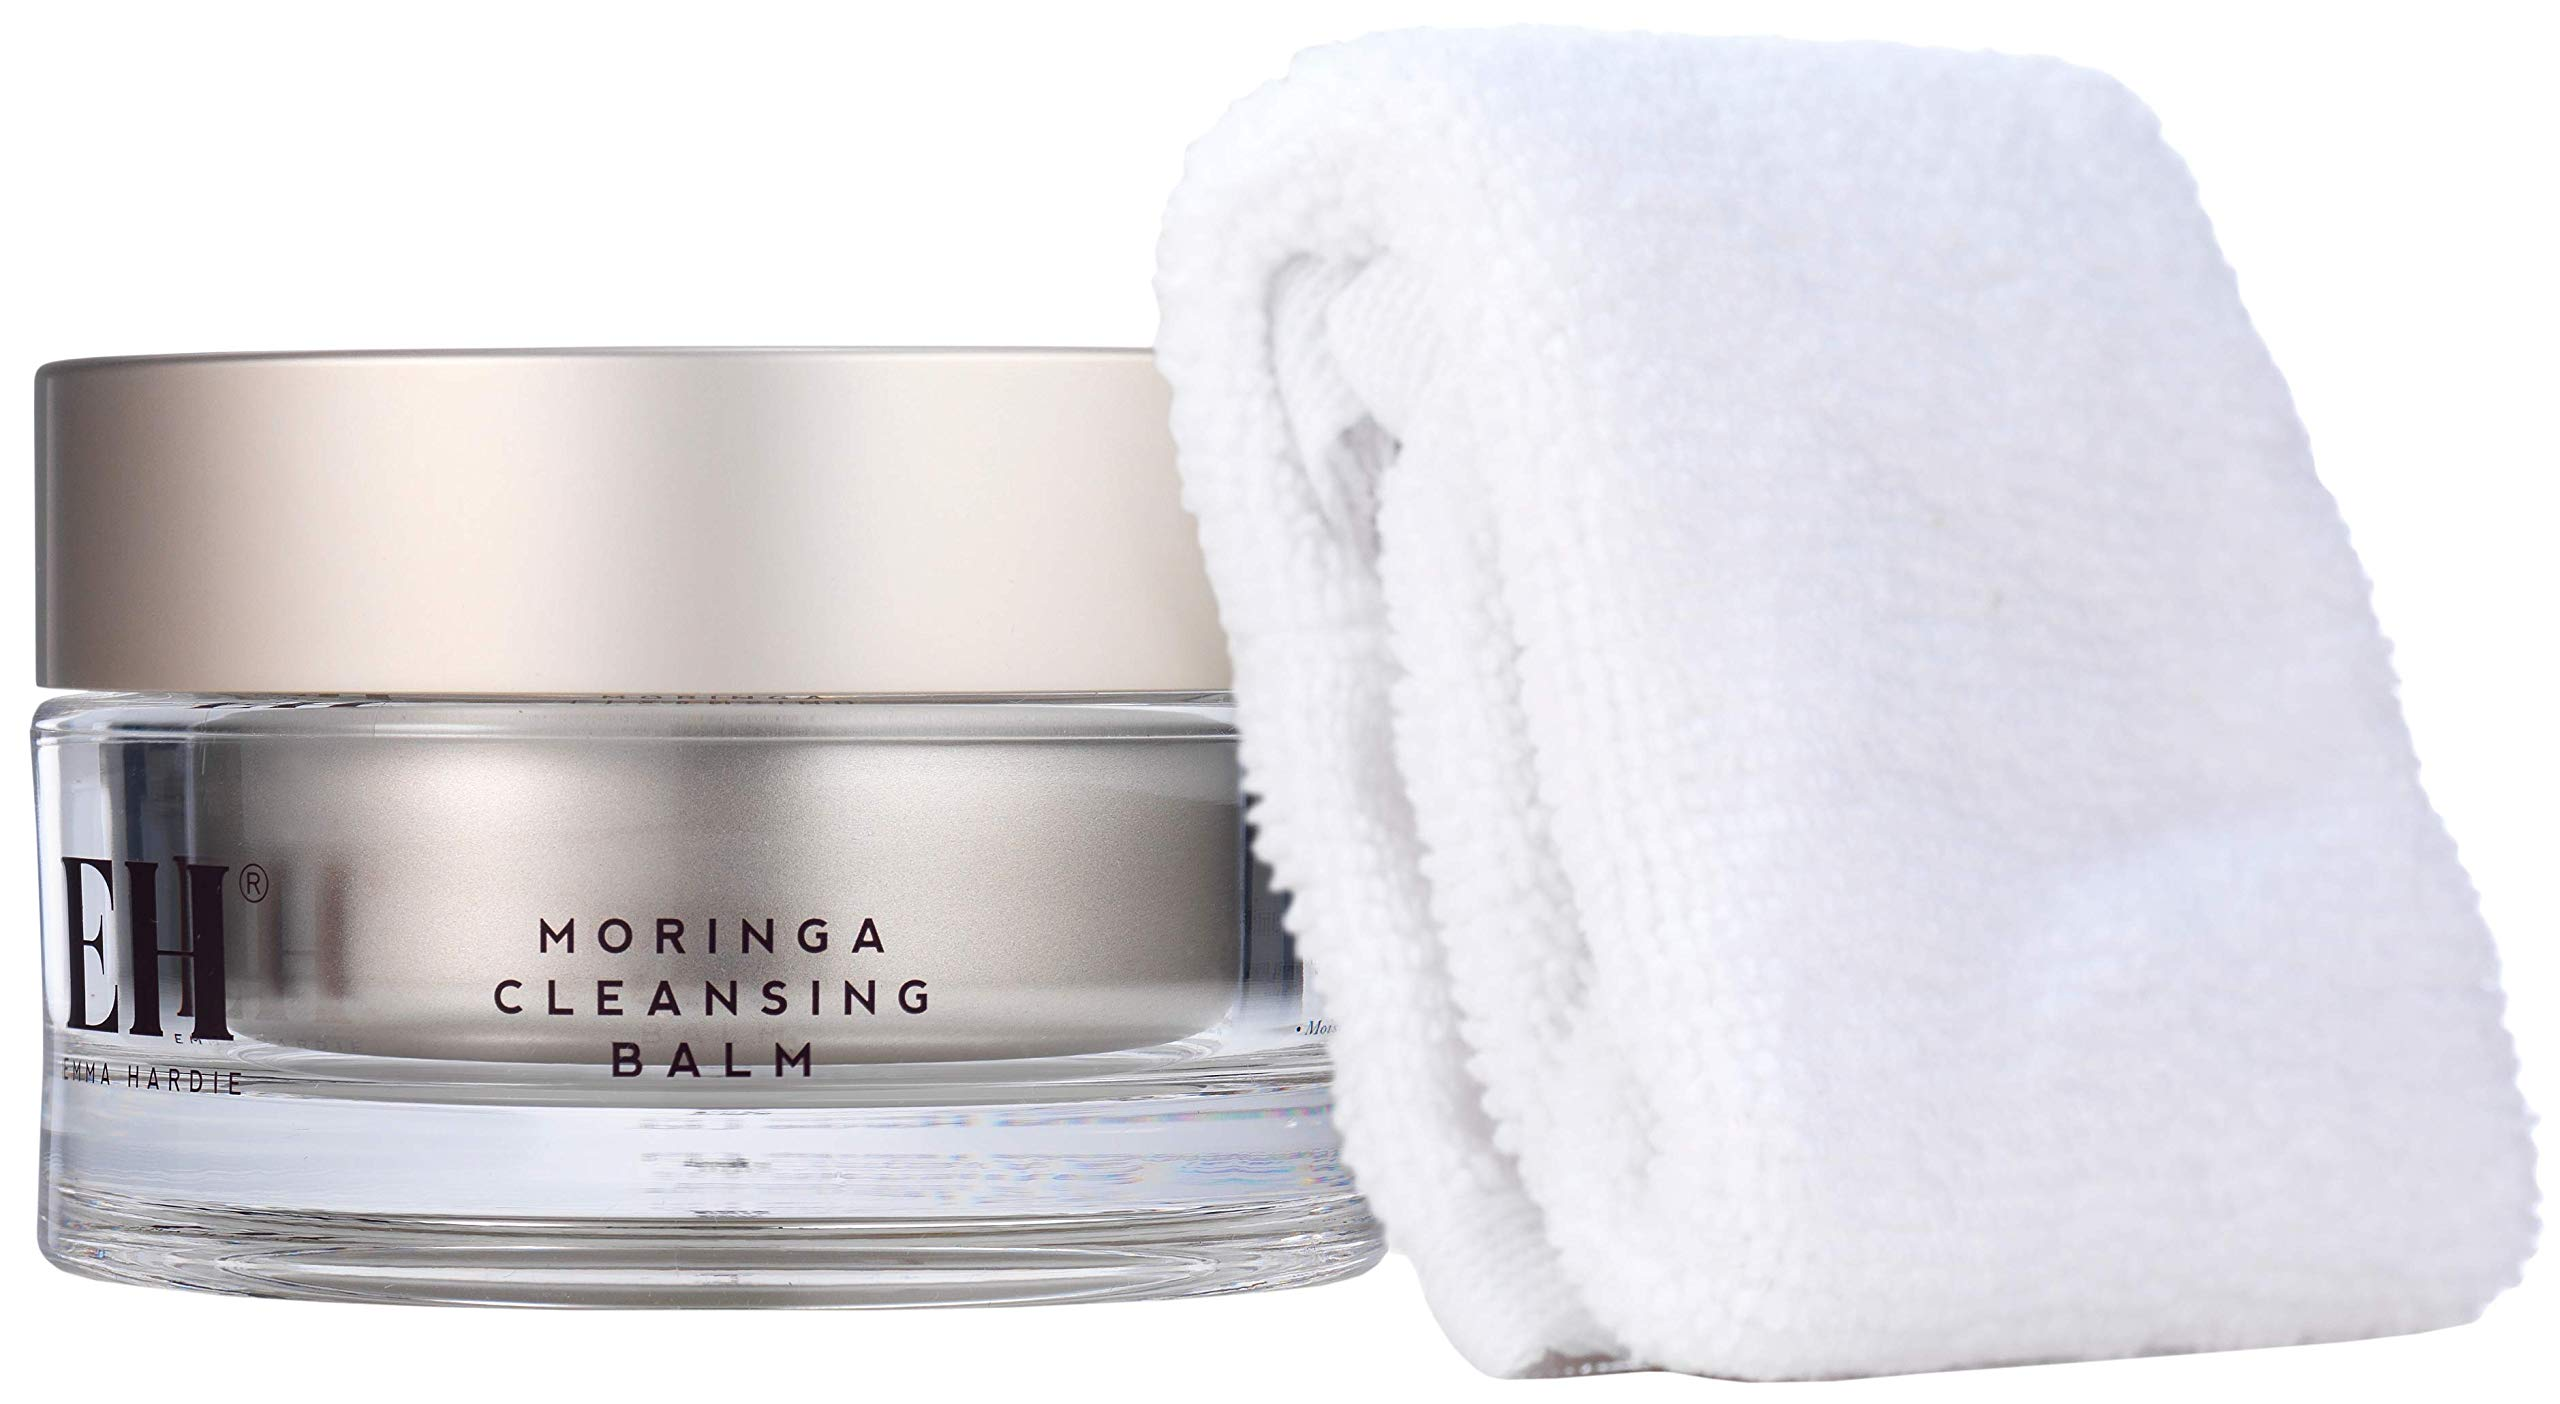 Emma Hardie | Moringa Cleansing Balm With Dual-Action Cleansing Cloth | Deep Clean | For All Skin Types | Paraben Free | 3.52 oz balm - 1 cloth by Emma Hardie